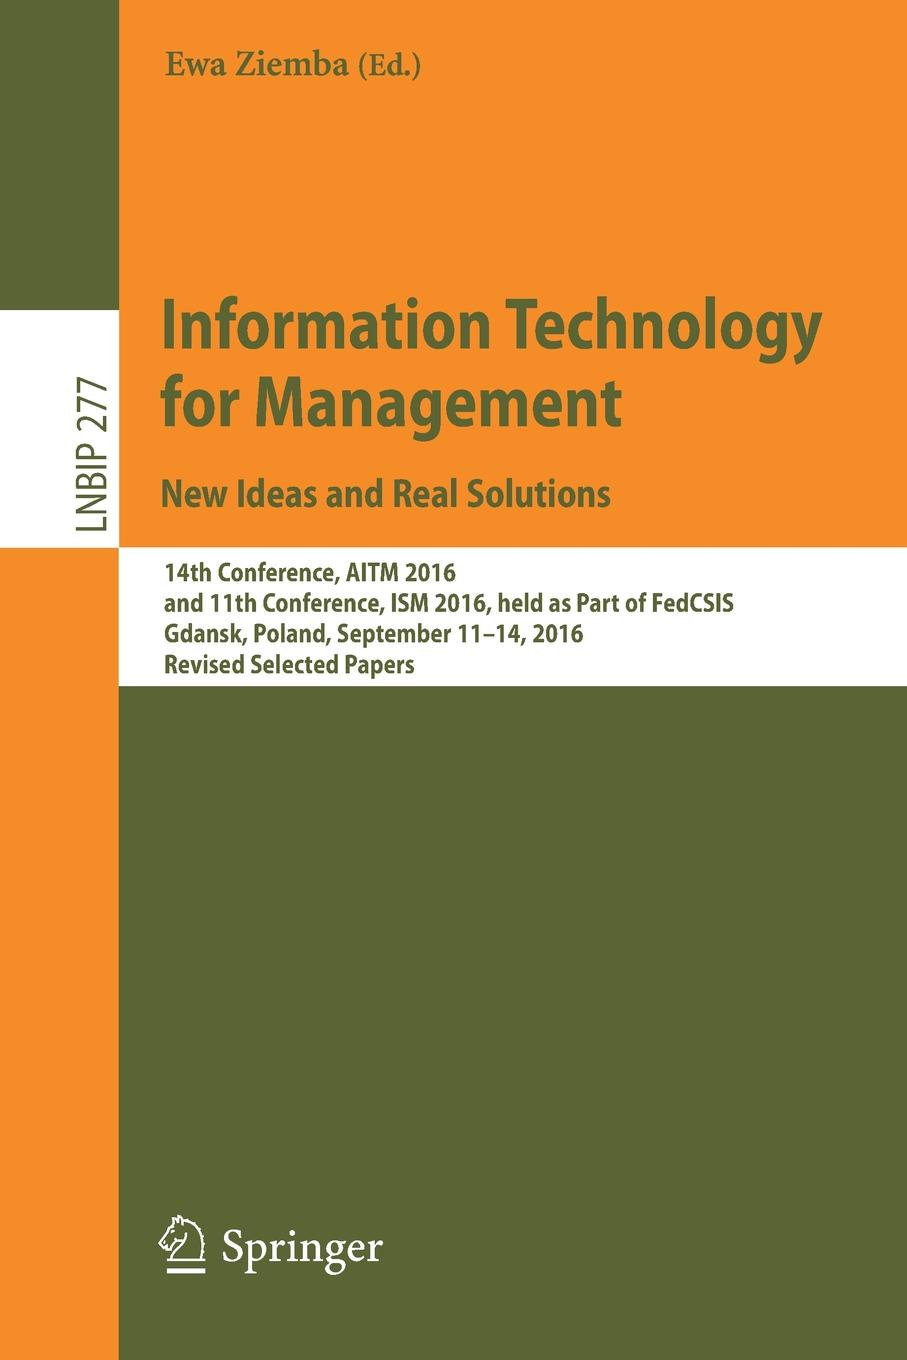 Information Technology for Management. New Ideas and Real Solutions : 14th Conference, AITM 2016, and 11th Conference, ISM 2016, held as Part of FedCSIS, Gdansk, Poland, September 11-14, 2016, Revised Selected Papers 2016 new